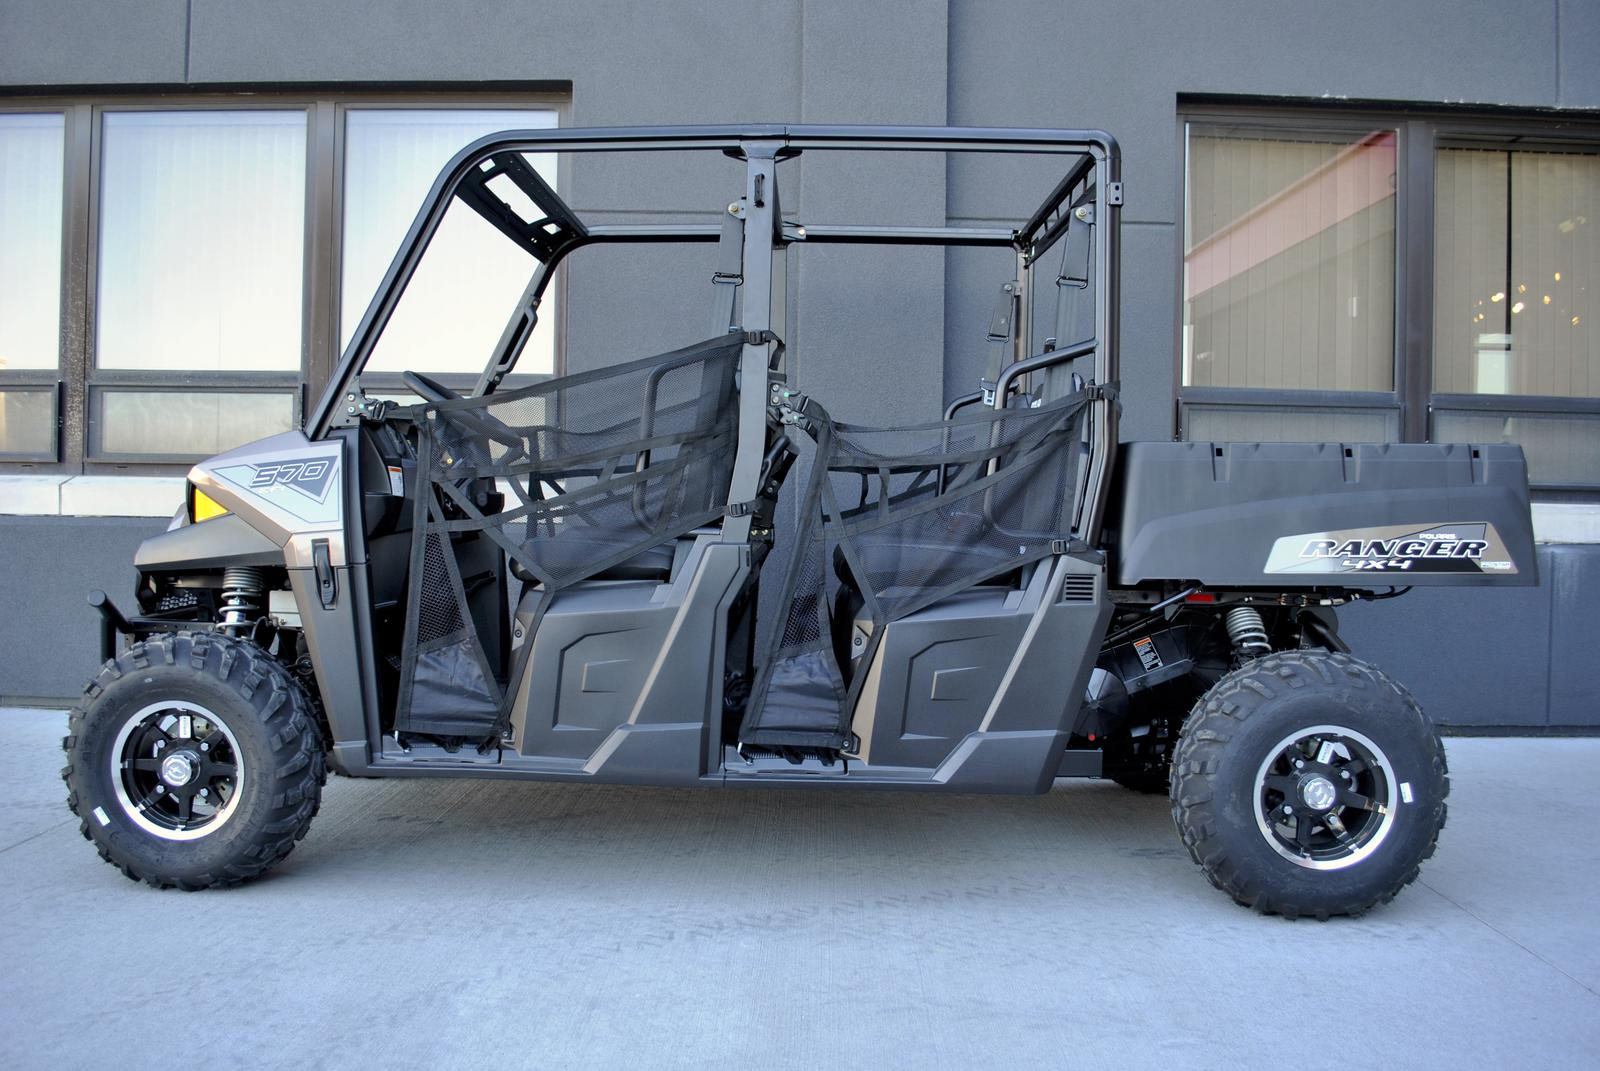 2019 Polaris Industries Ranger 570 M CREW - R19RNE57BX